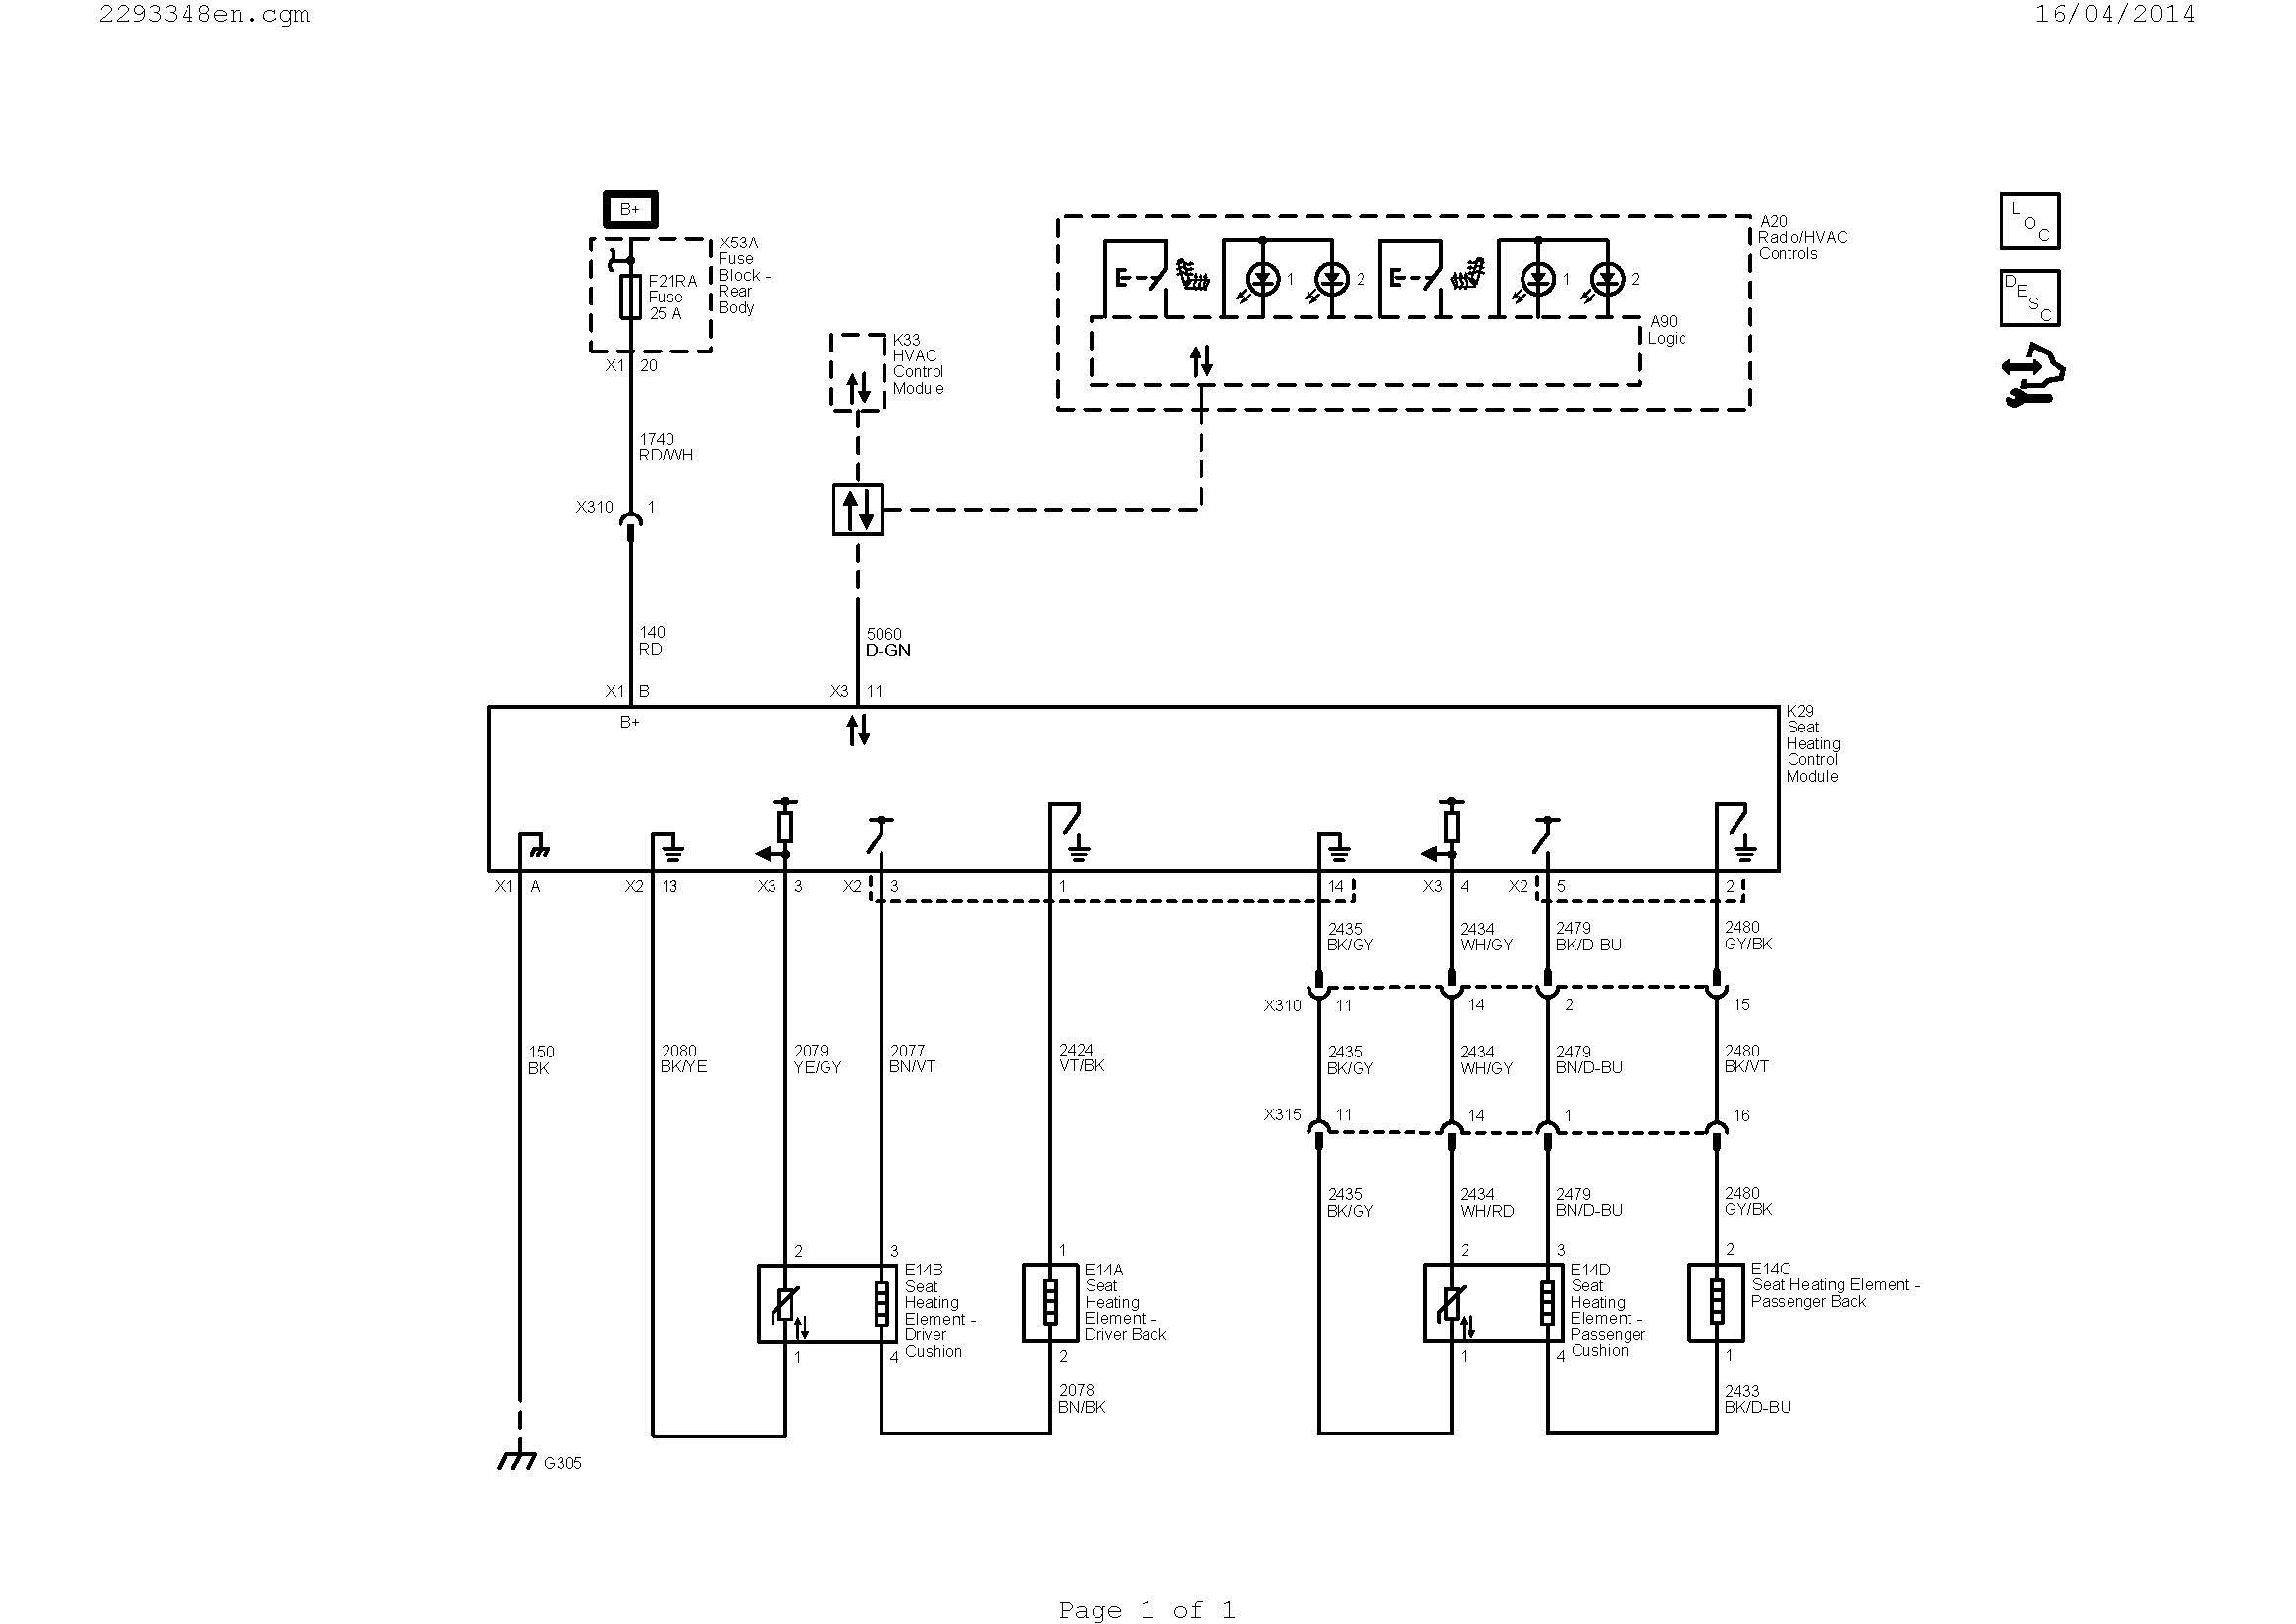 Wiring Diagrams for Electrical New Wiring Diagram Guitar Fresh Hvac Diagram Best Hvac Diagram 0d